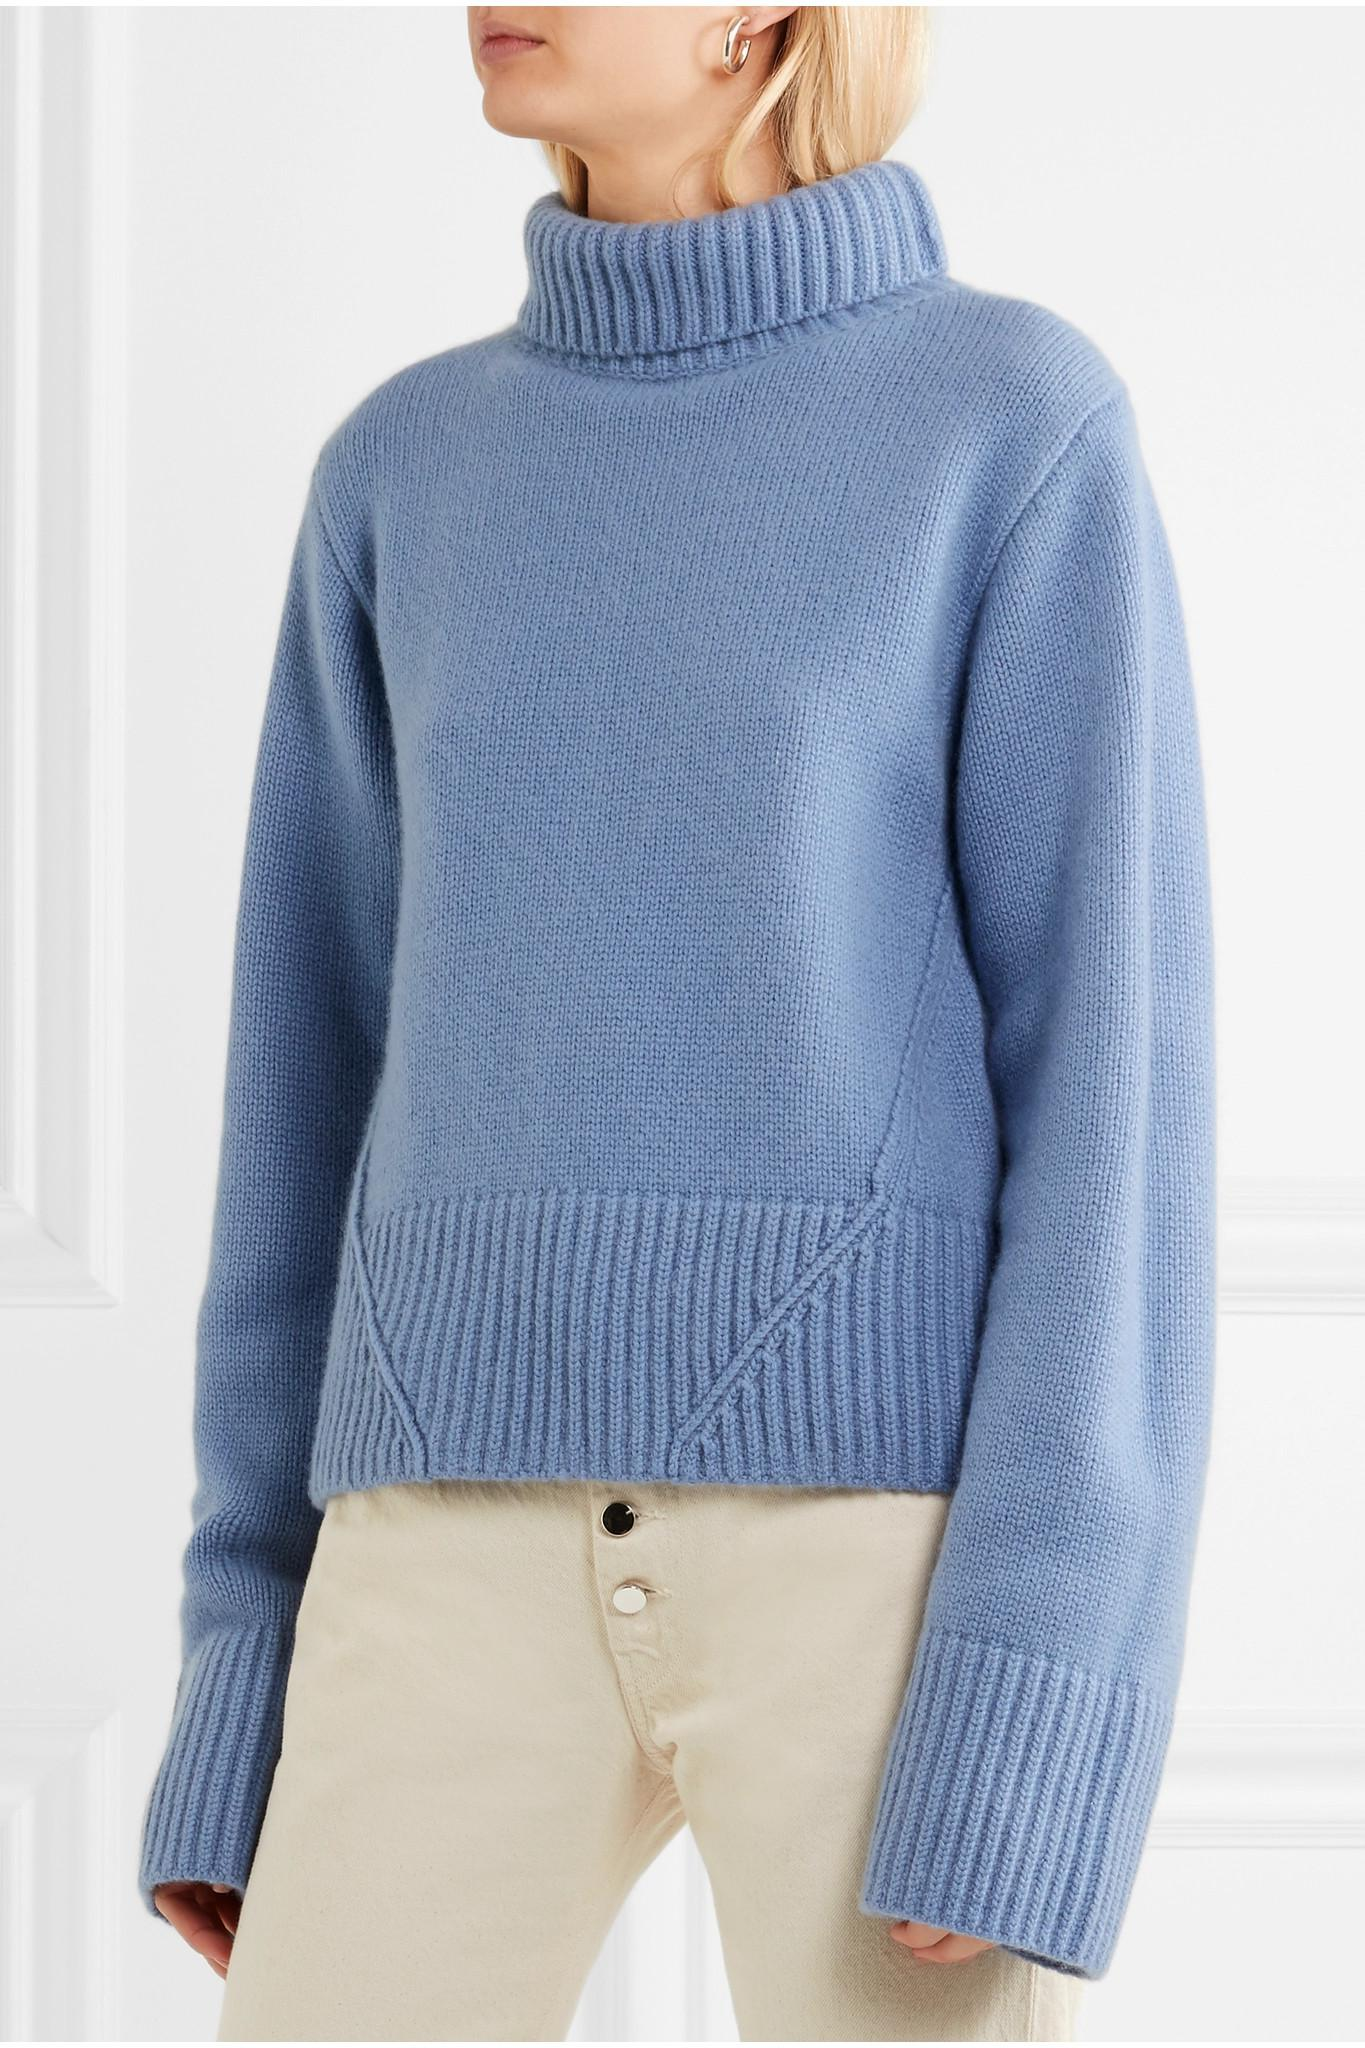 Khaite Wallis Cashmere Turtleneck Sweater in Blue | Lyst